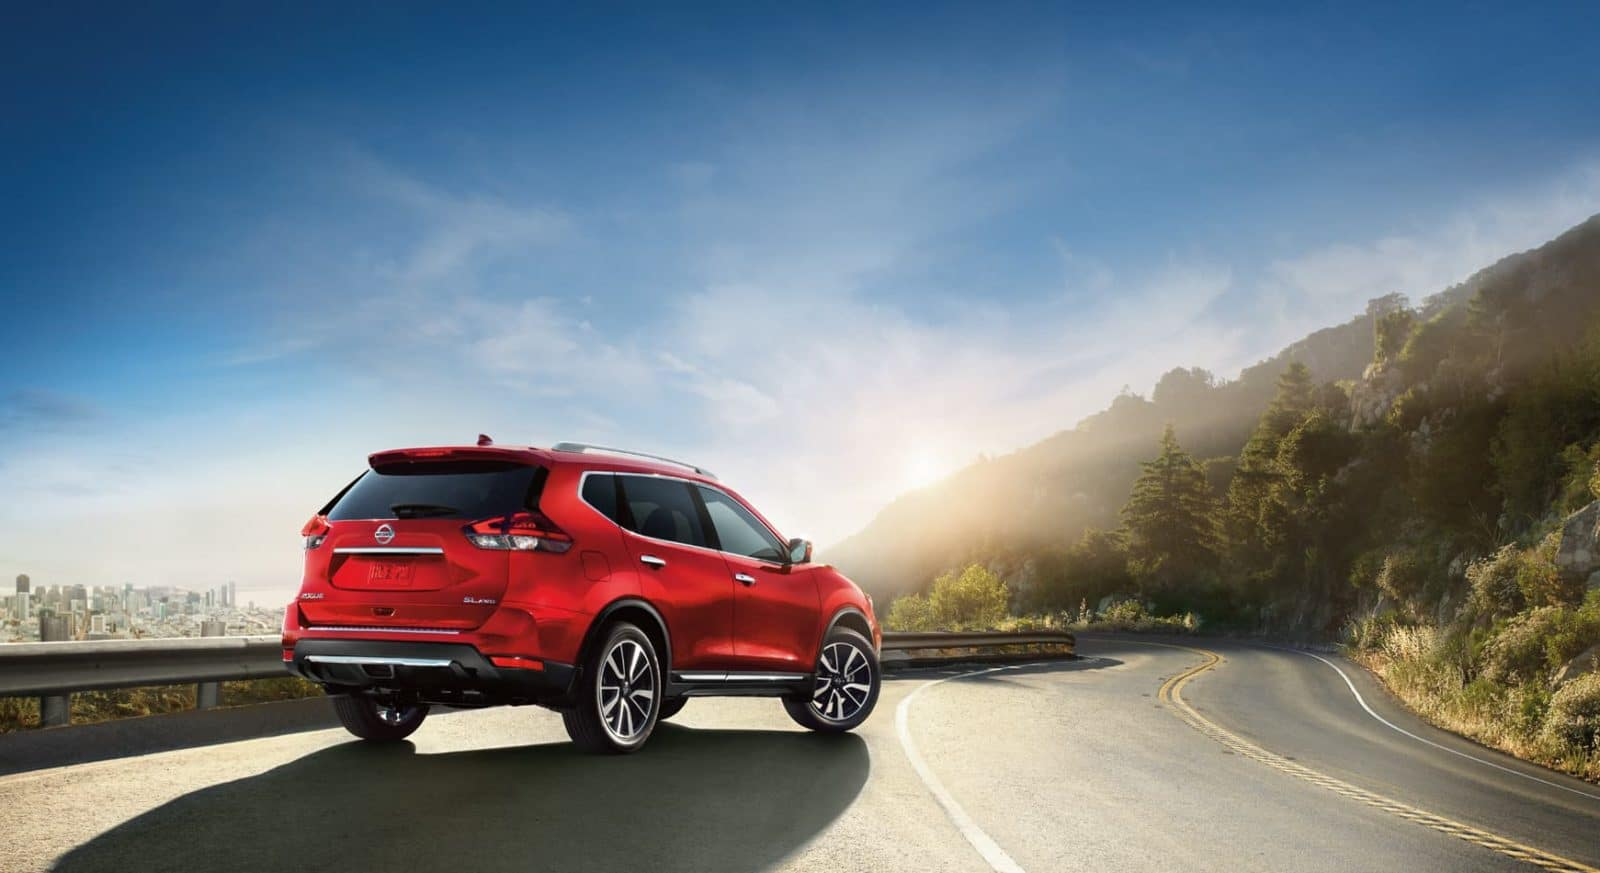 Nissan & Used Car Dealership - Durango, CO - Nissan of Durango